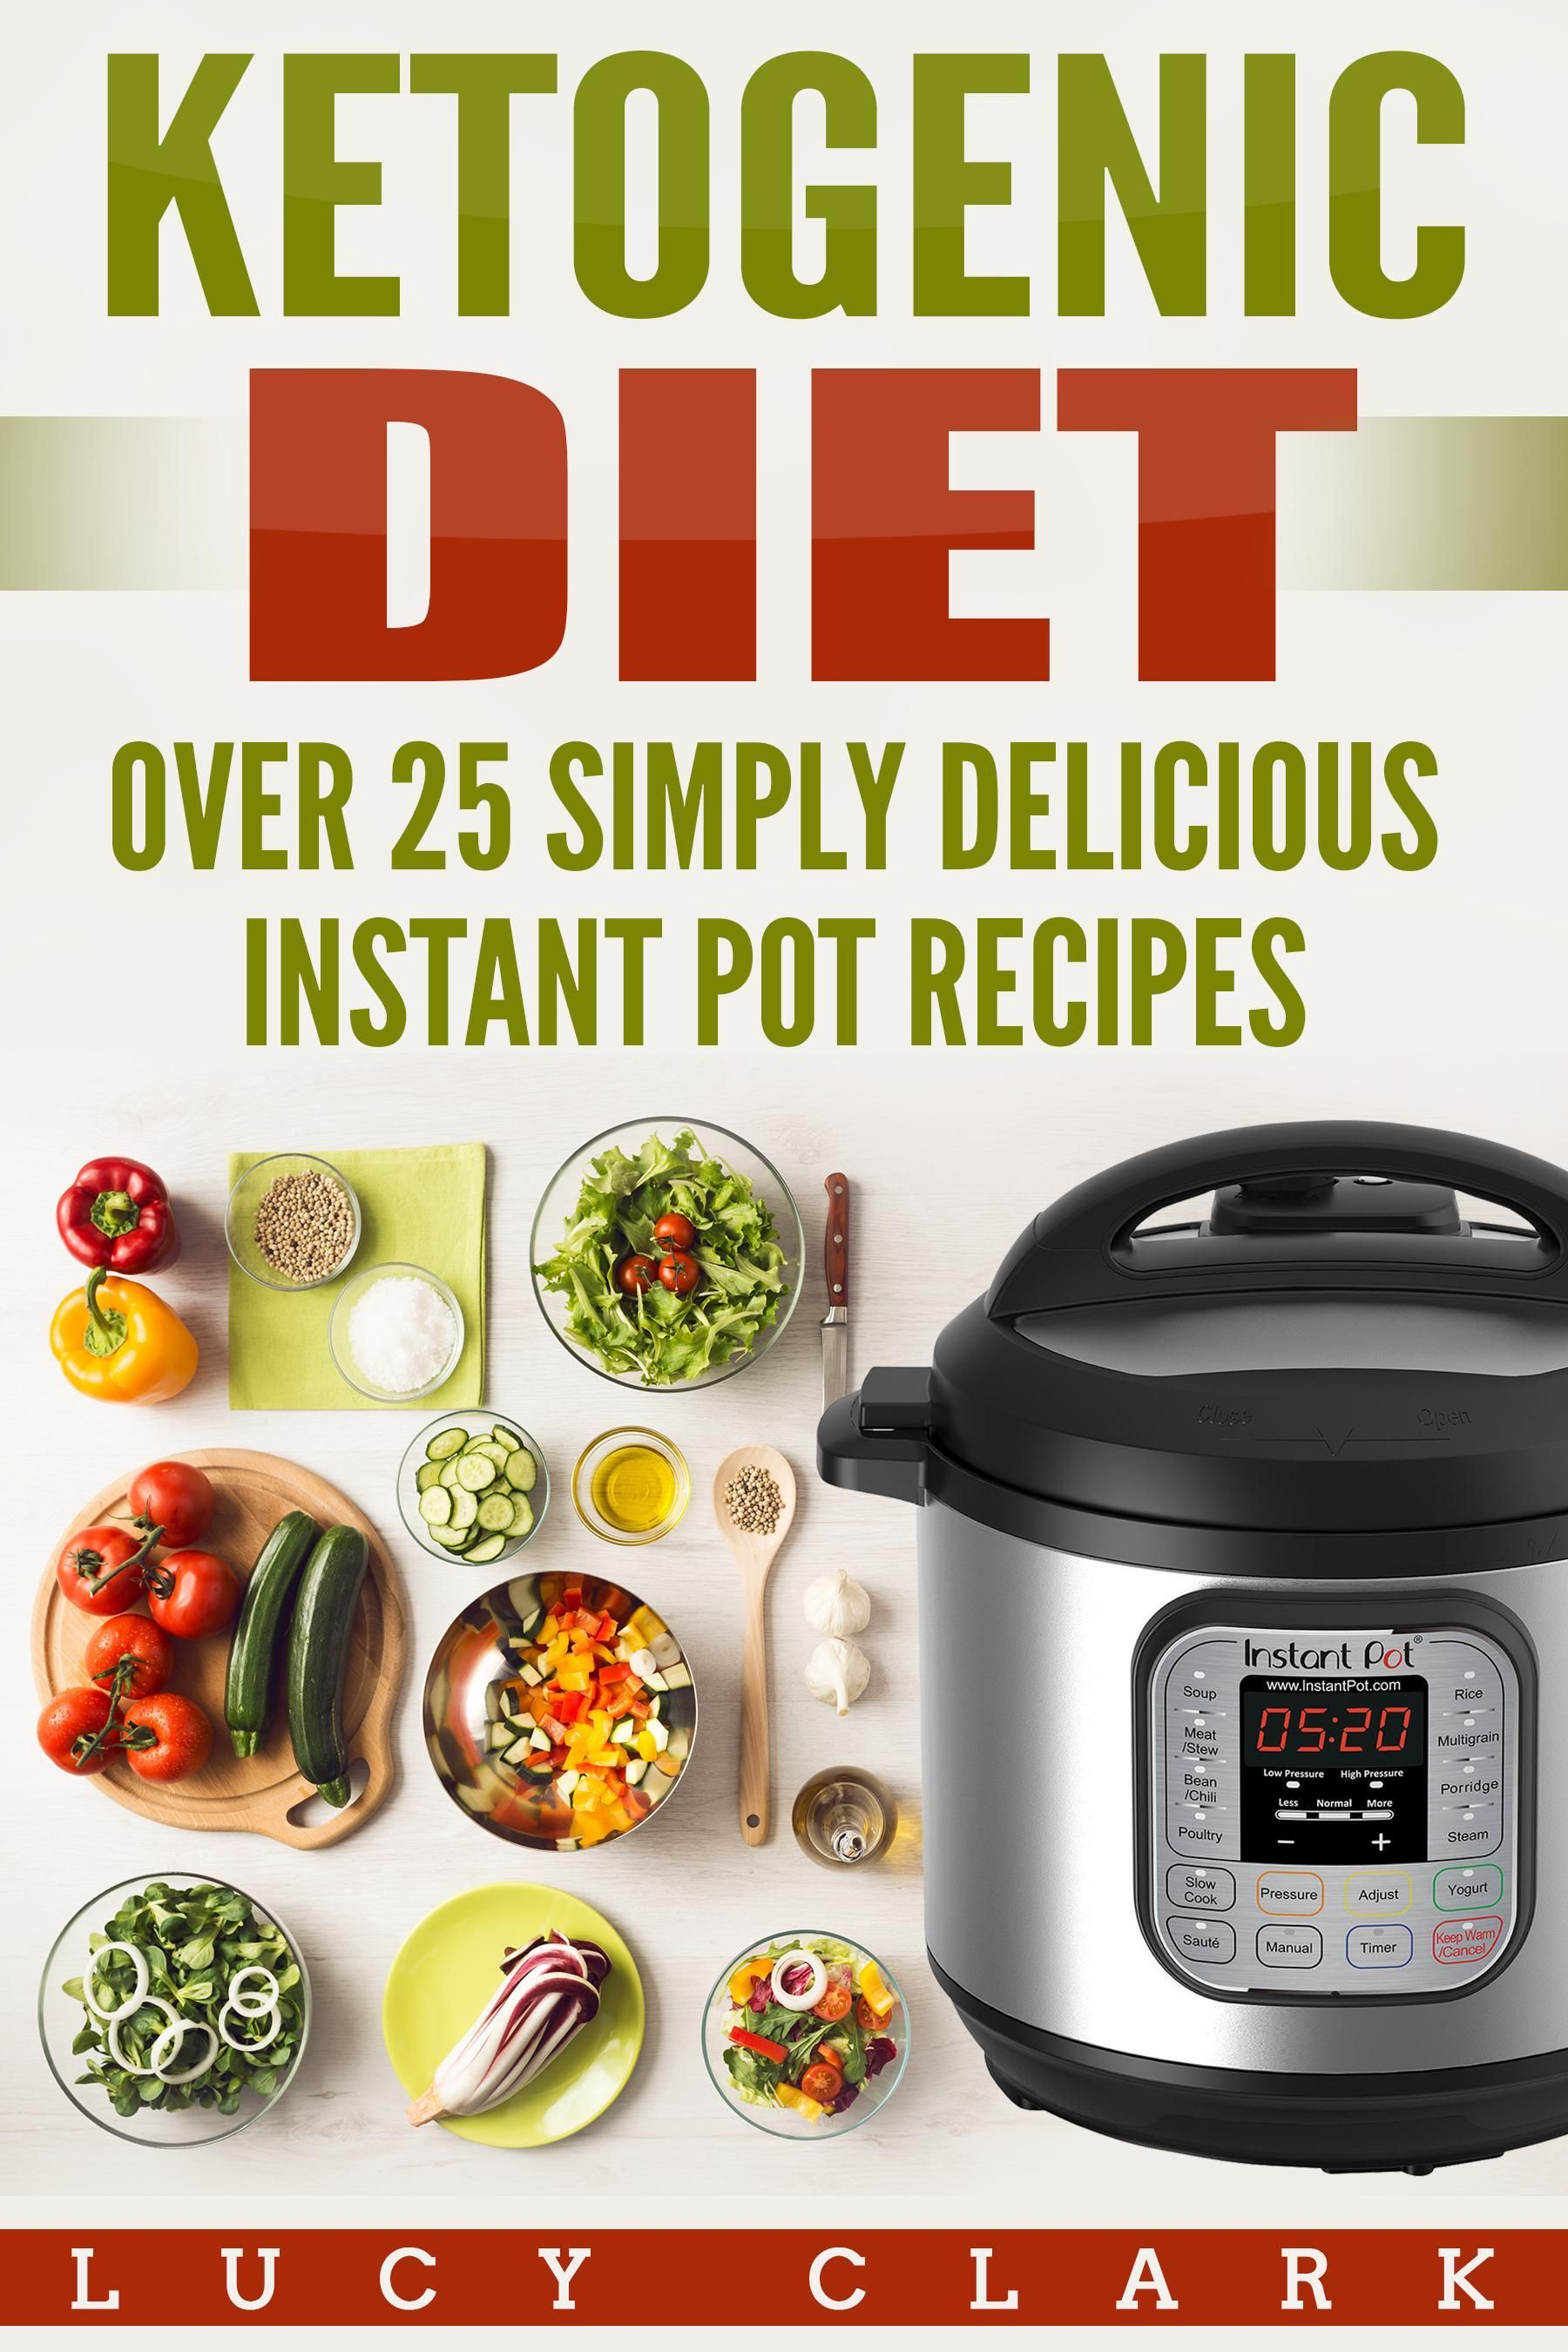 Ketogenic Diet: Over 25 Simply Delicious Instant Pot Recipes